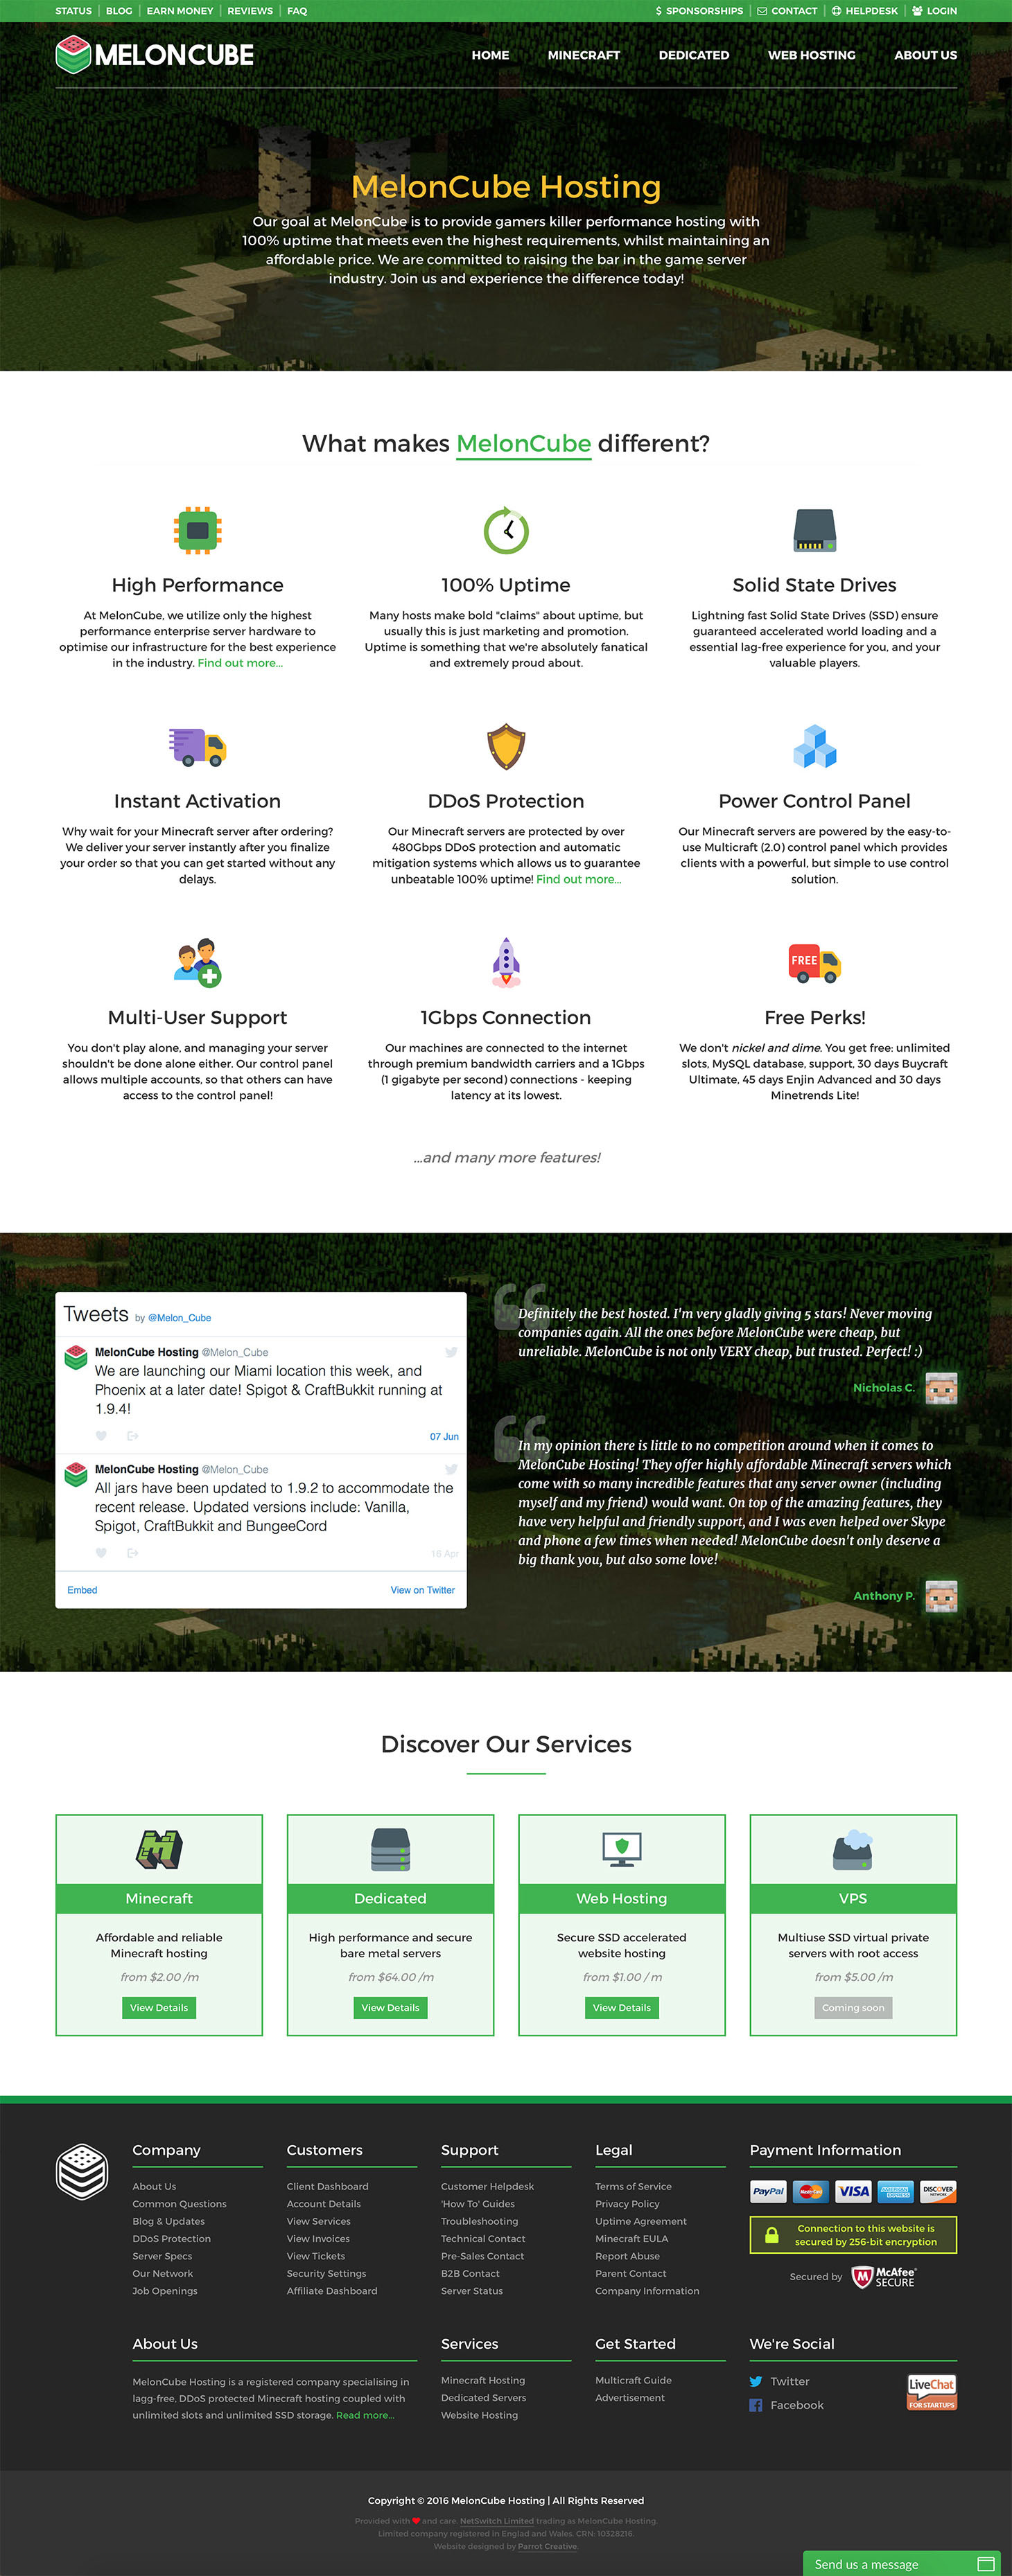 MelonCube Hosting web design - home